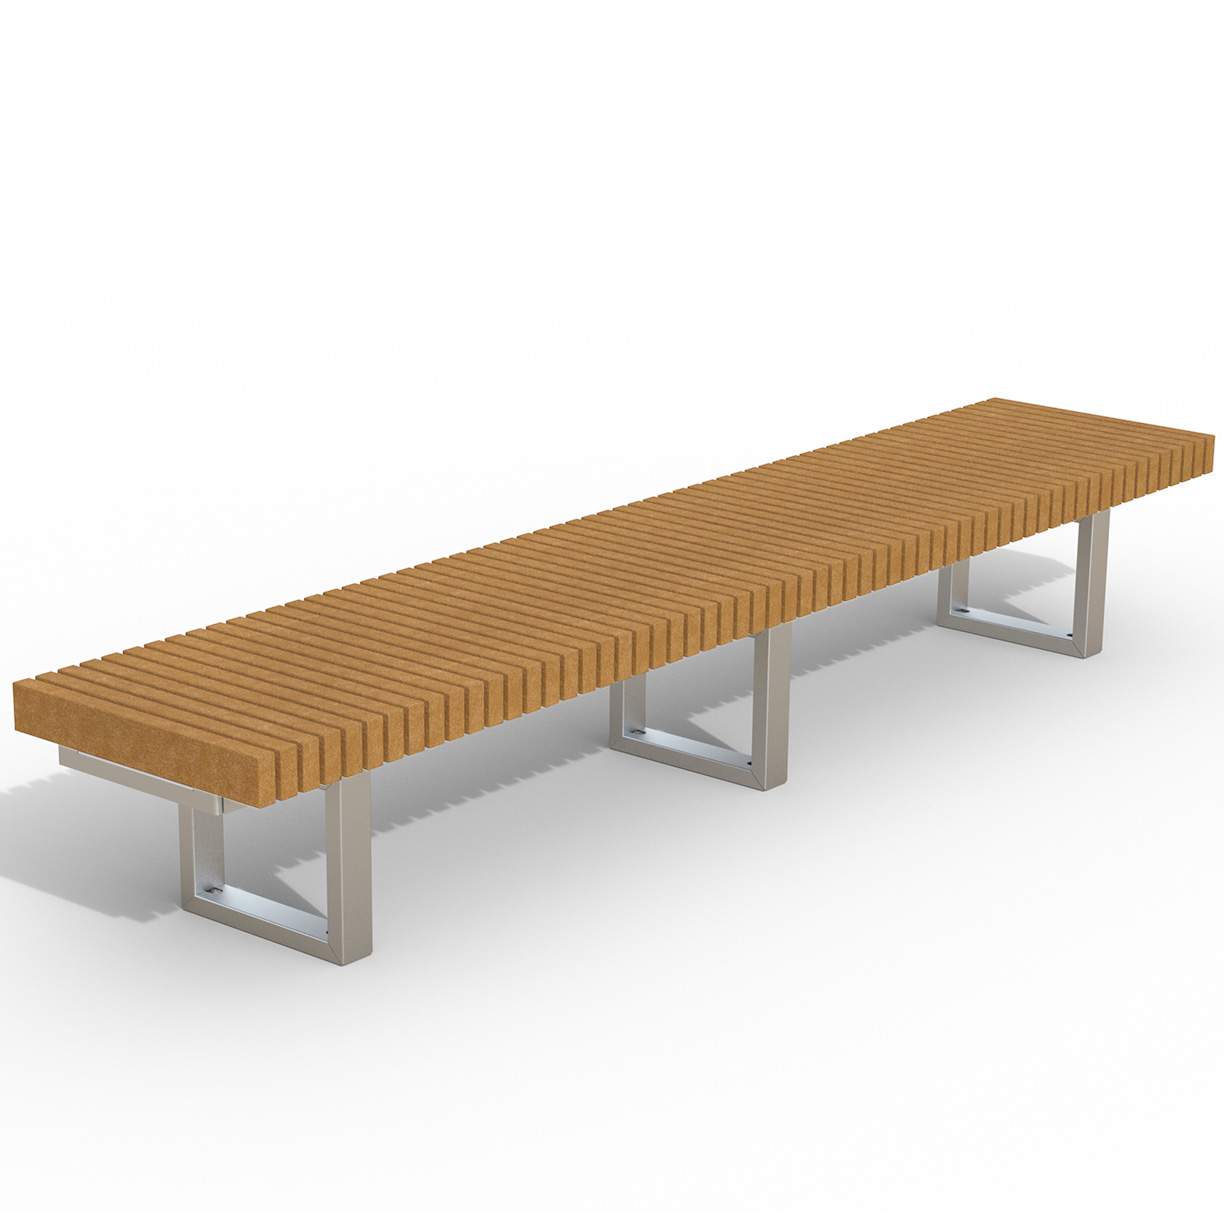 INF24L10R  Infinity Collection 2' x 10' Linear Recycled Plastic Bench